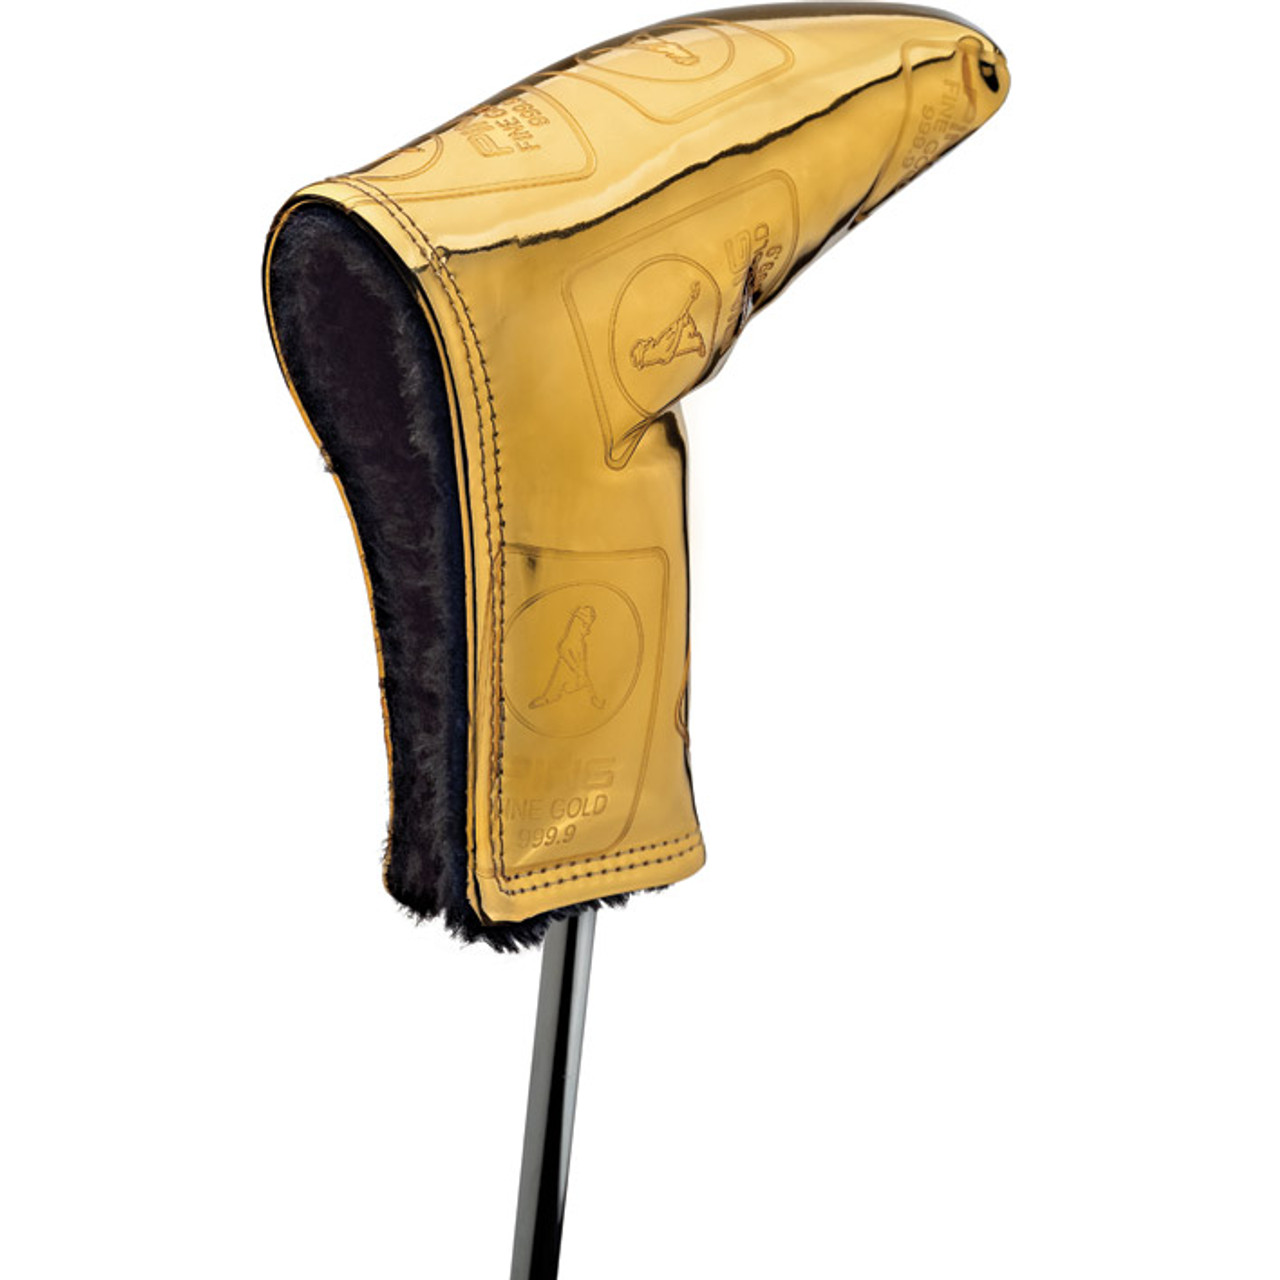 Ping Gold Vault Blade Putter Cover